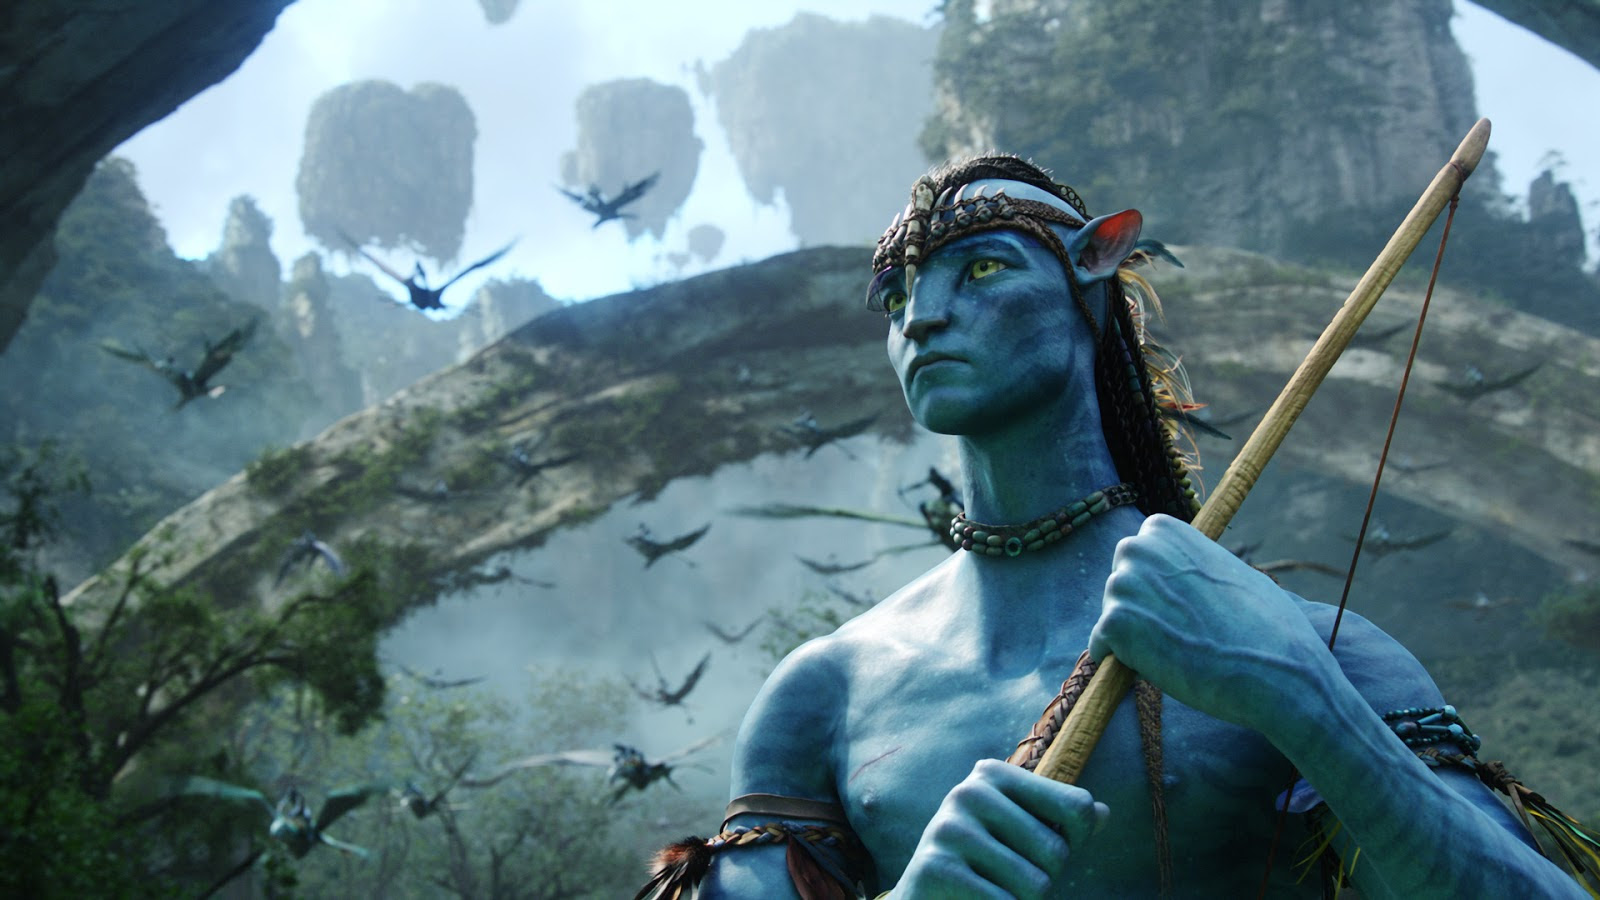 James Cameron's AVATAR Quintilogy Lands Four Official Release Dates Starting In 2020